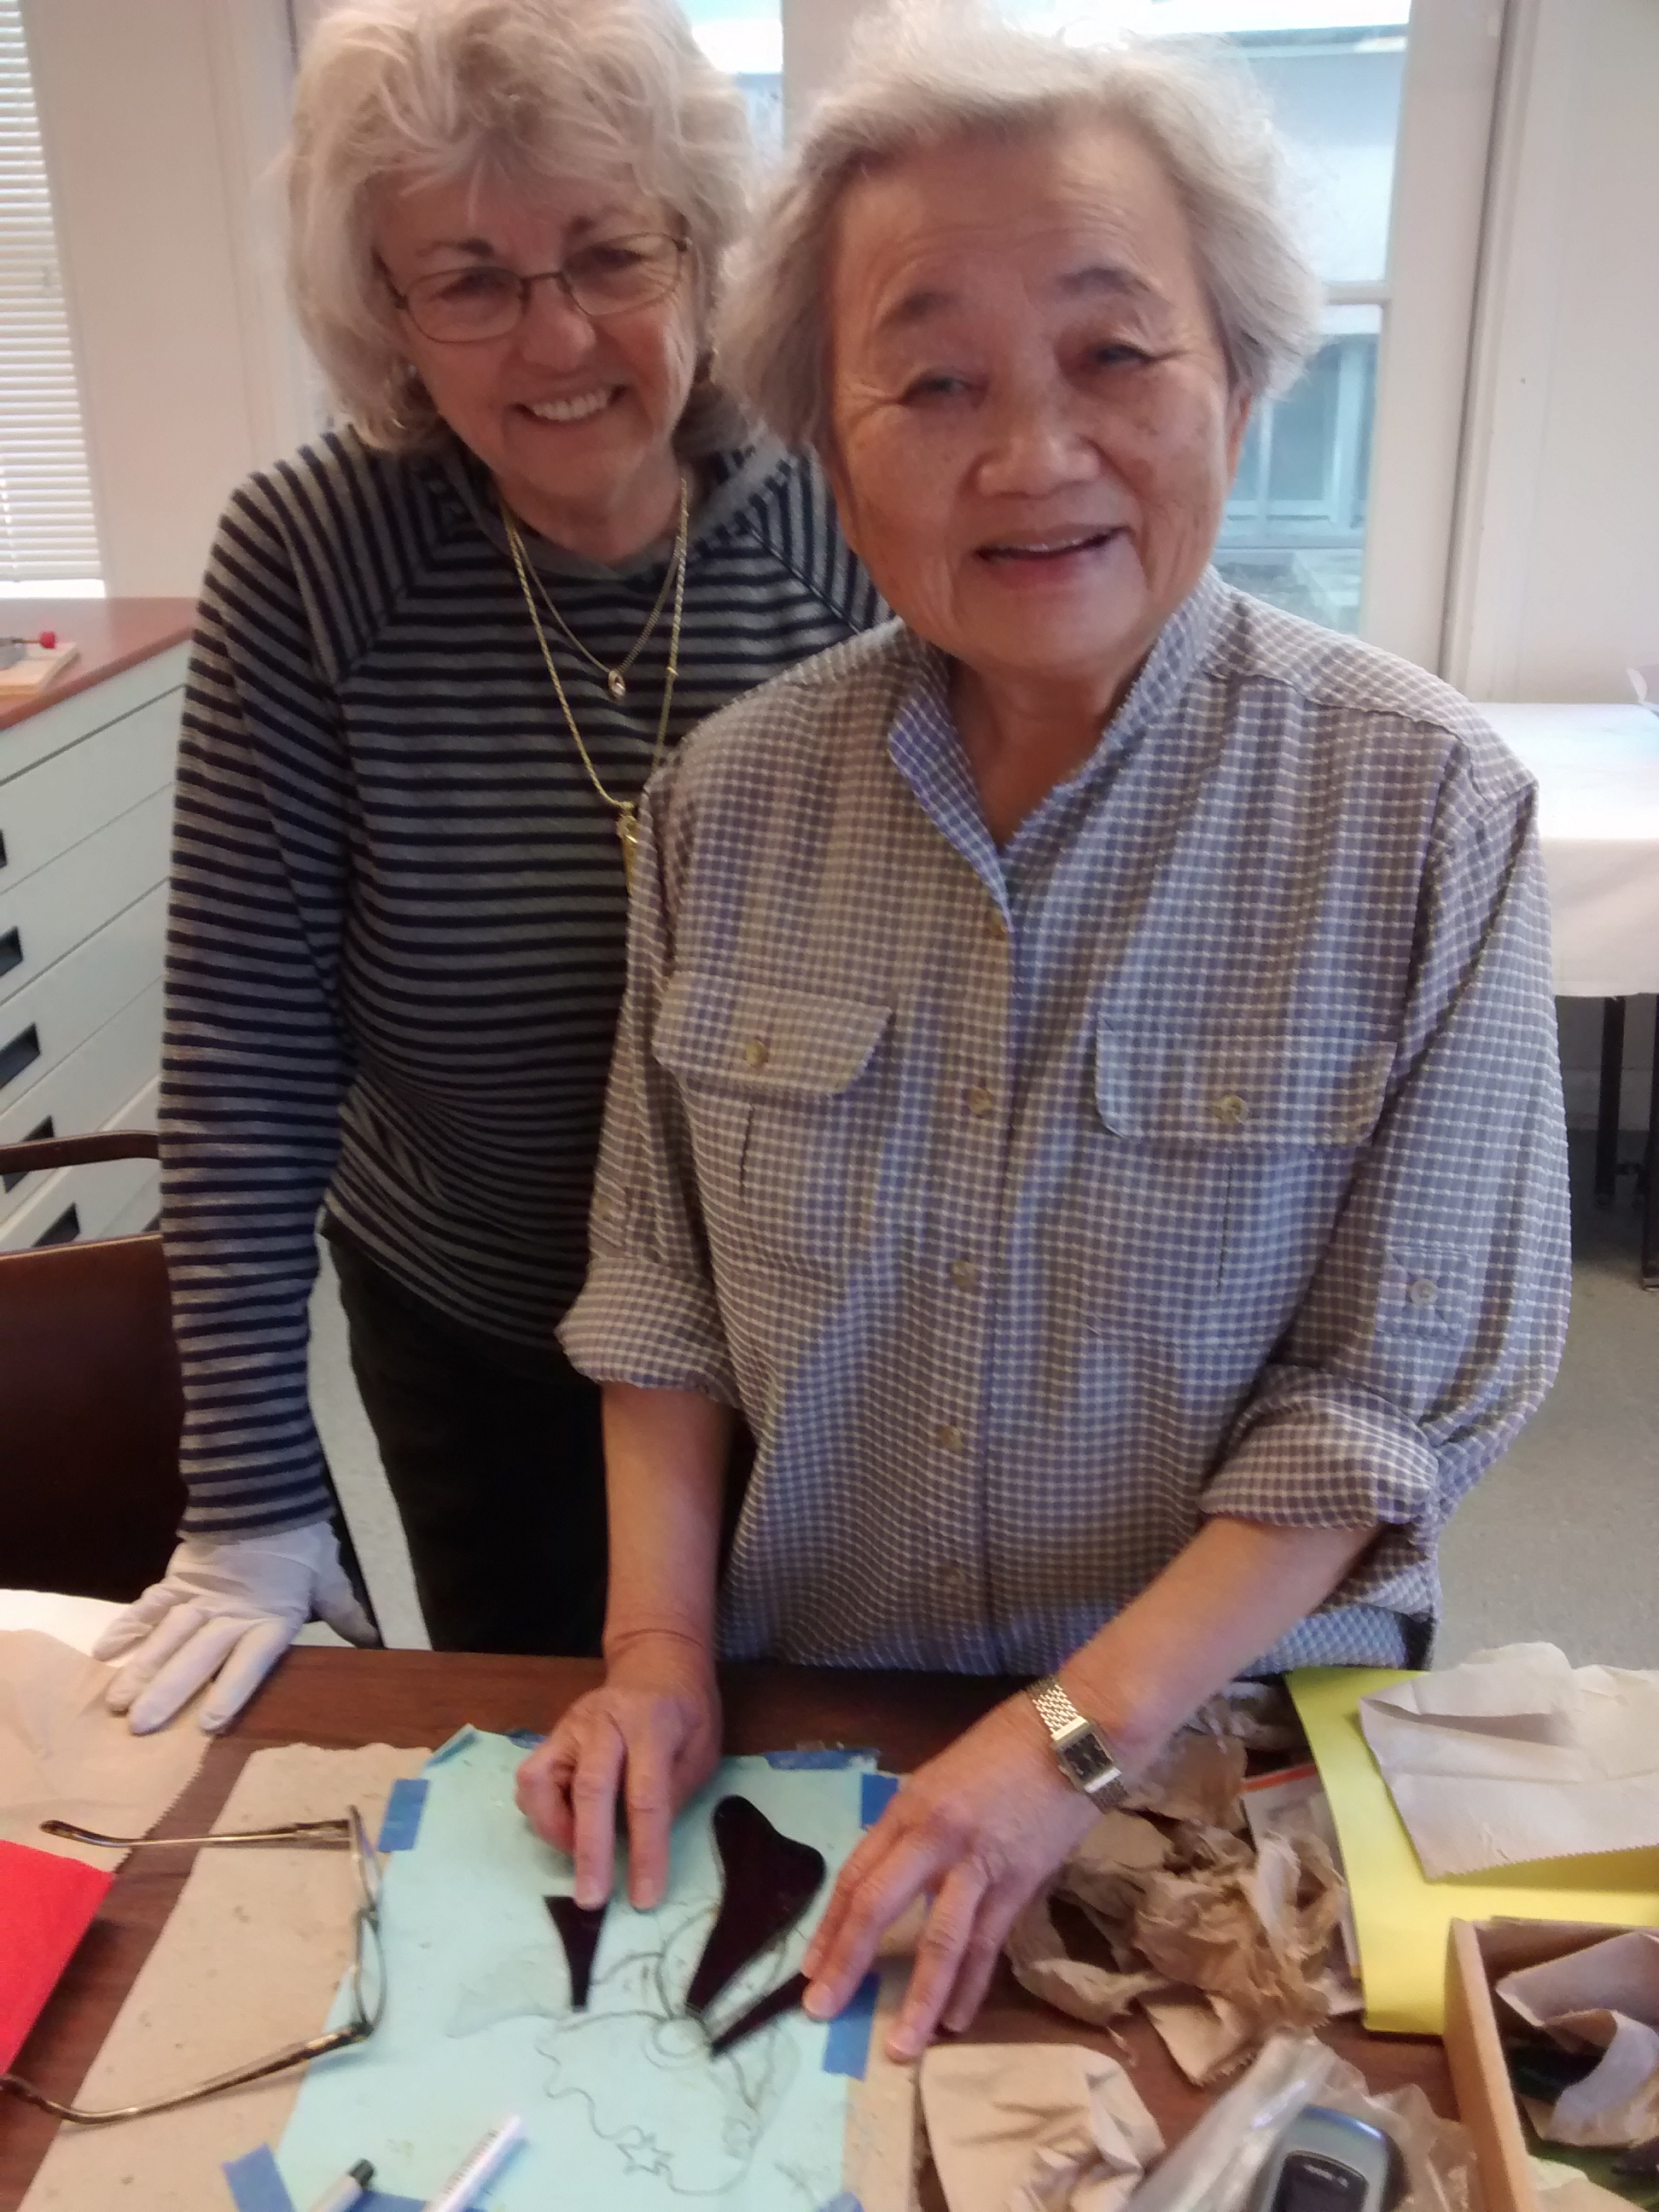 Courtesy photo -- Stained glass class members, Nancy Baldwin, left, and Grace Lin, work on a glass project at Mastick Senior Center.